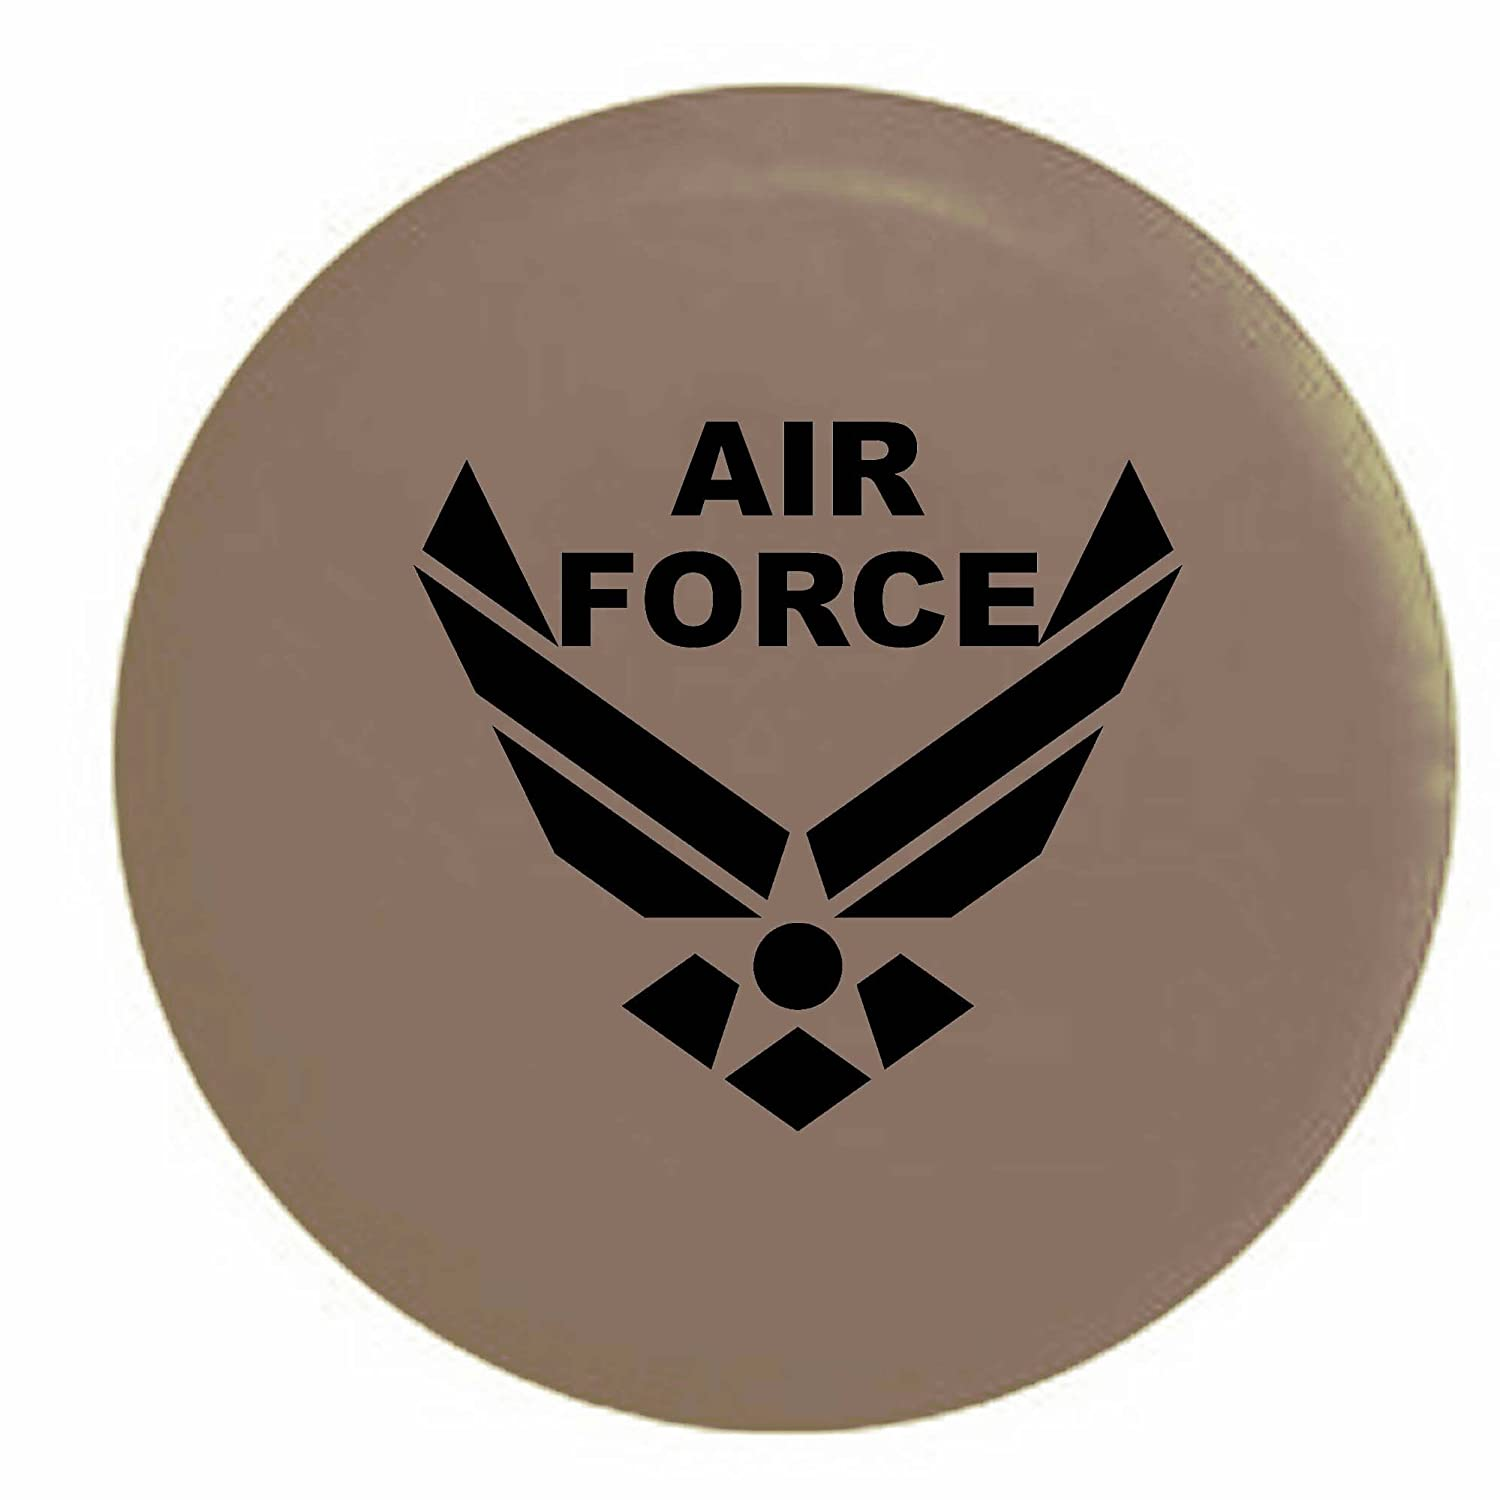 Pike USAF Air Force Military Trailer RV Spare Tire Cover OEM Vinyl Tan 31 in